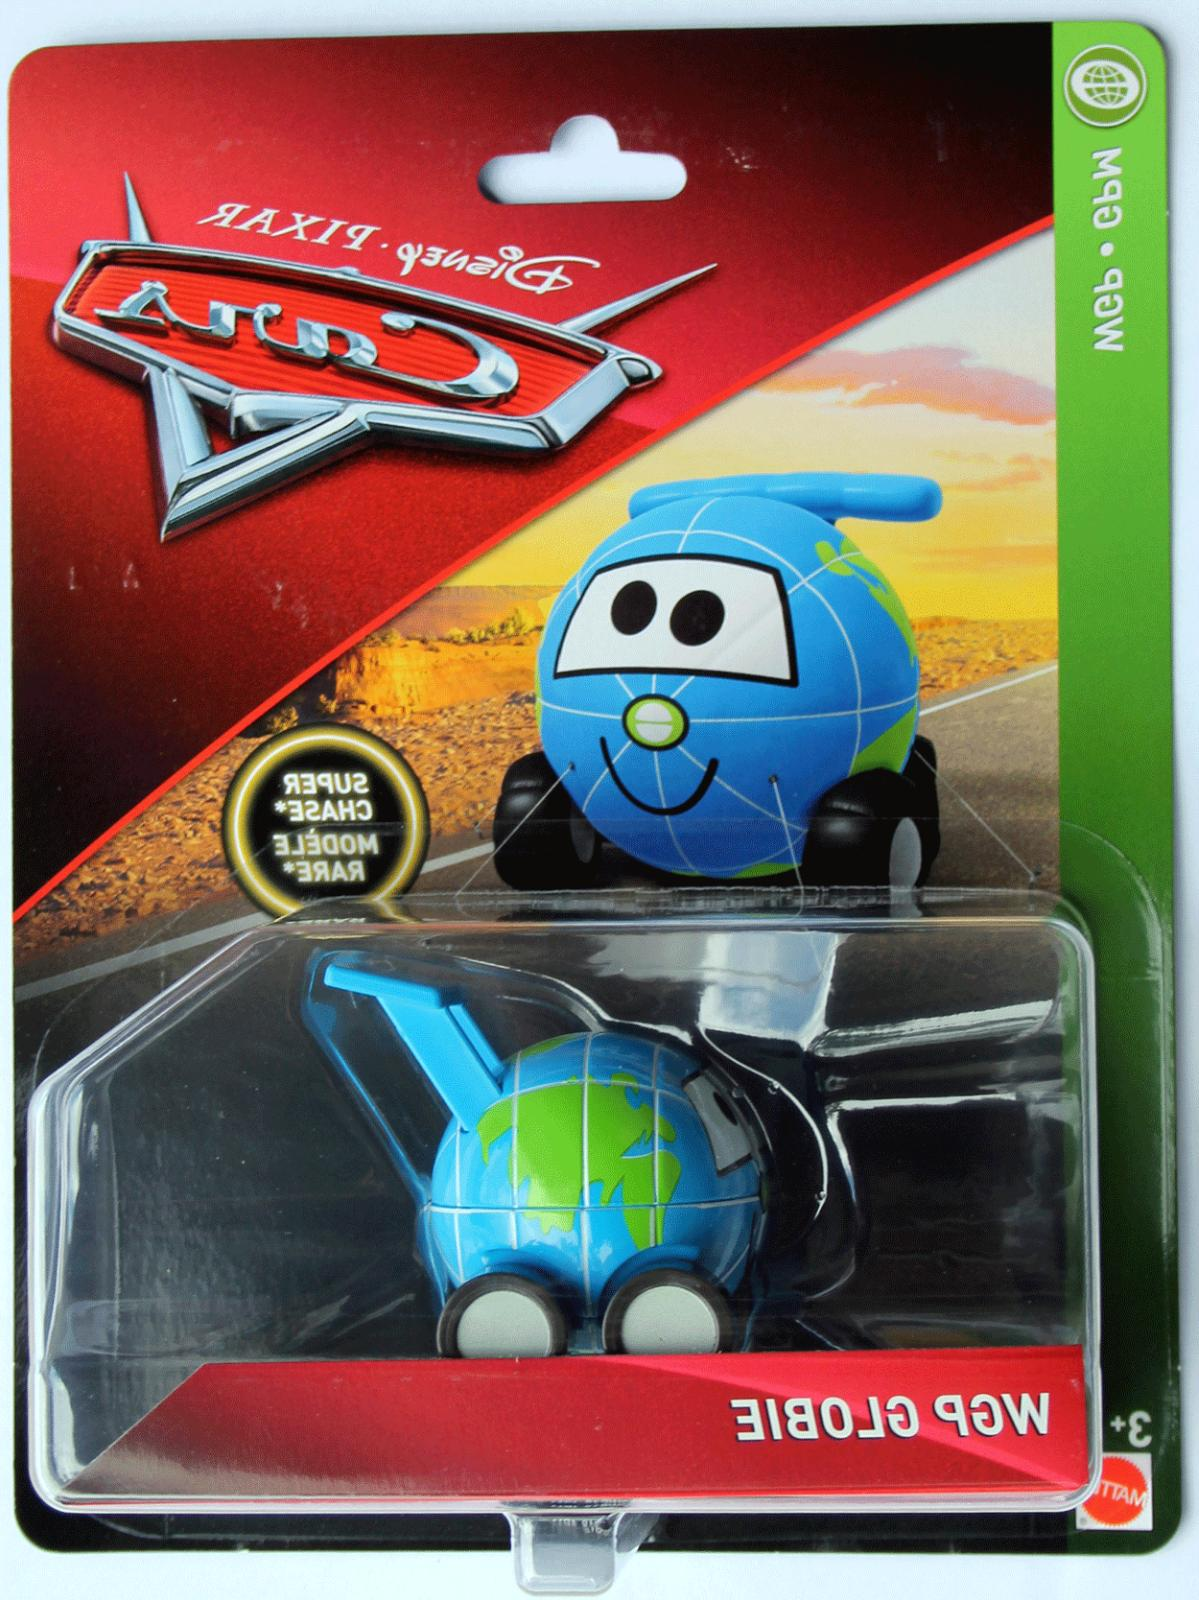 cars 3 deluxe wgp globie super chase